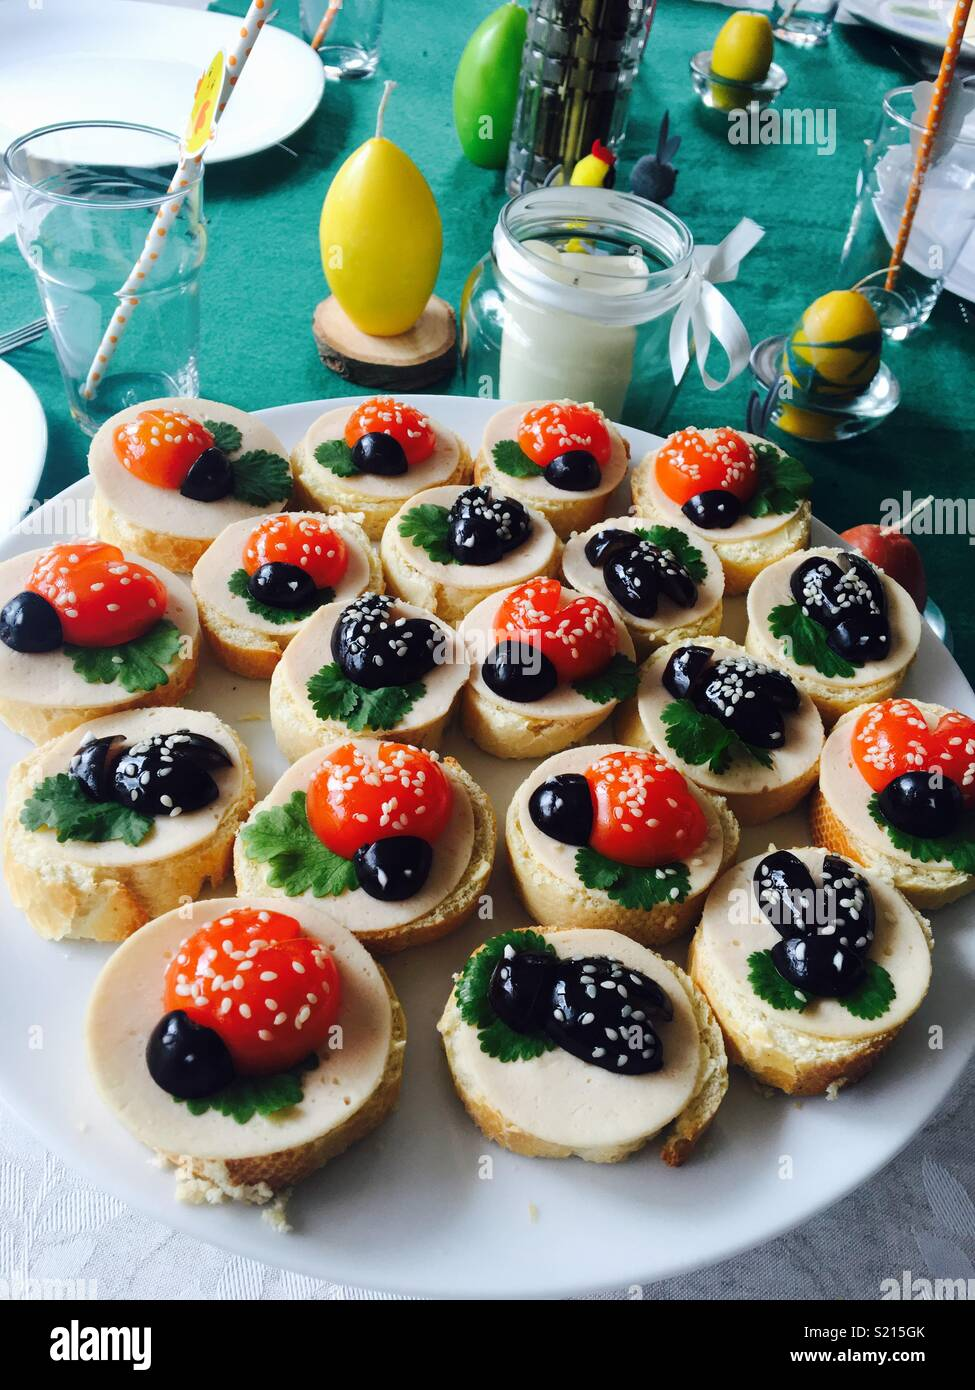 Coccinelle kids party food/ sandwiches Photo Stock